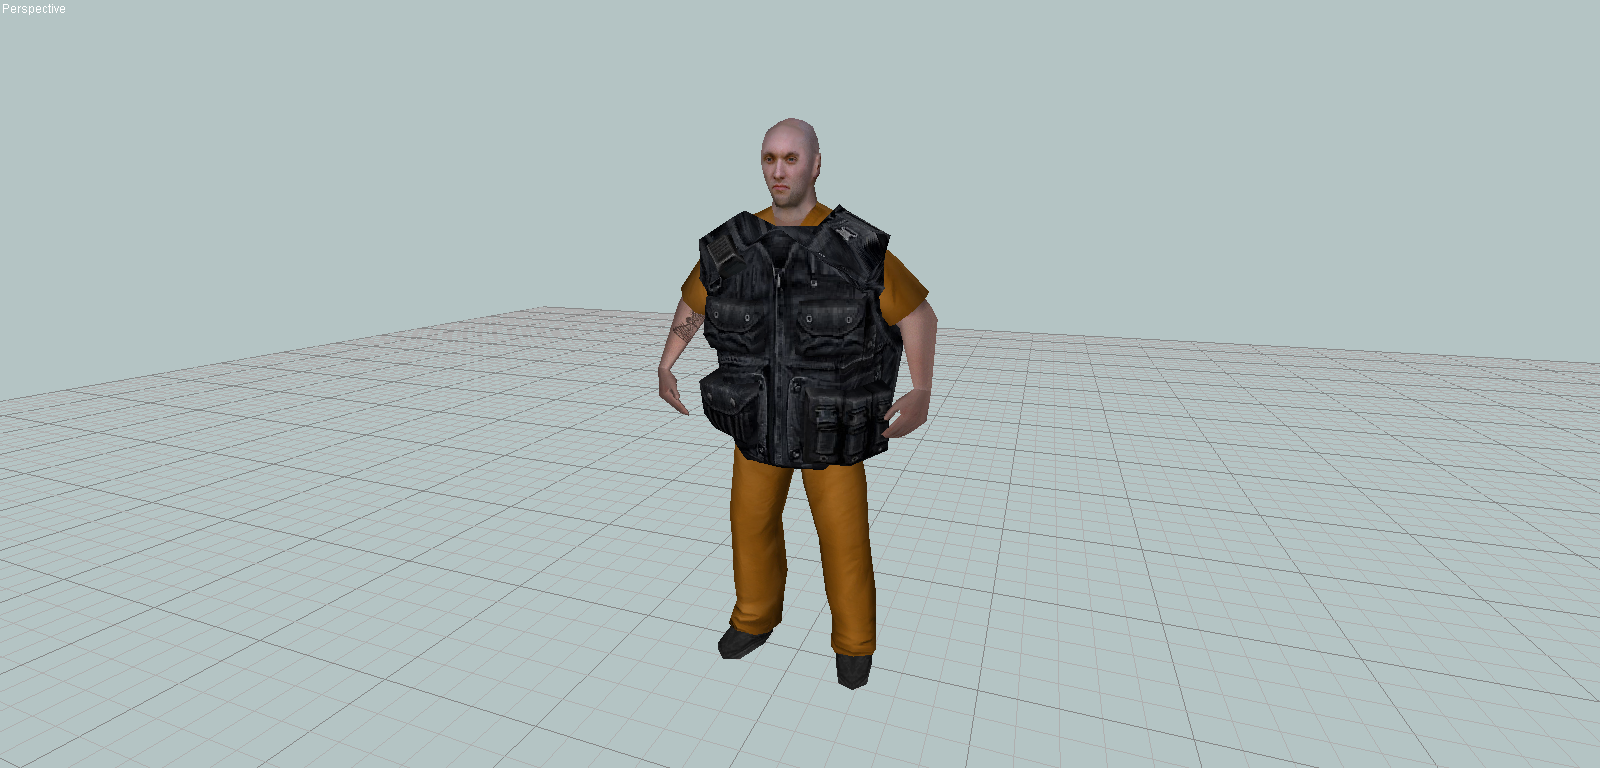 This NPC will most likely be armed with a pistol, and attempt to kill the player.